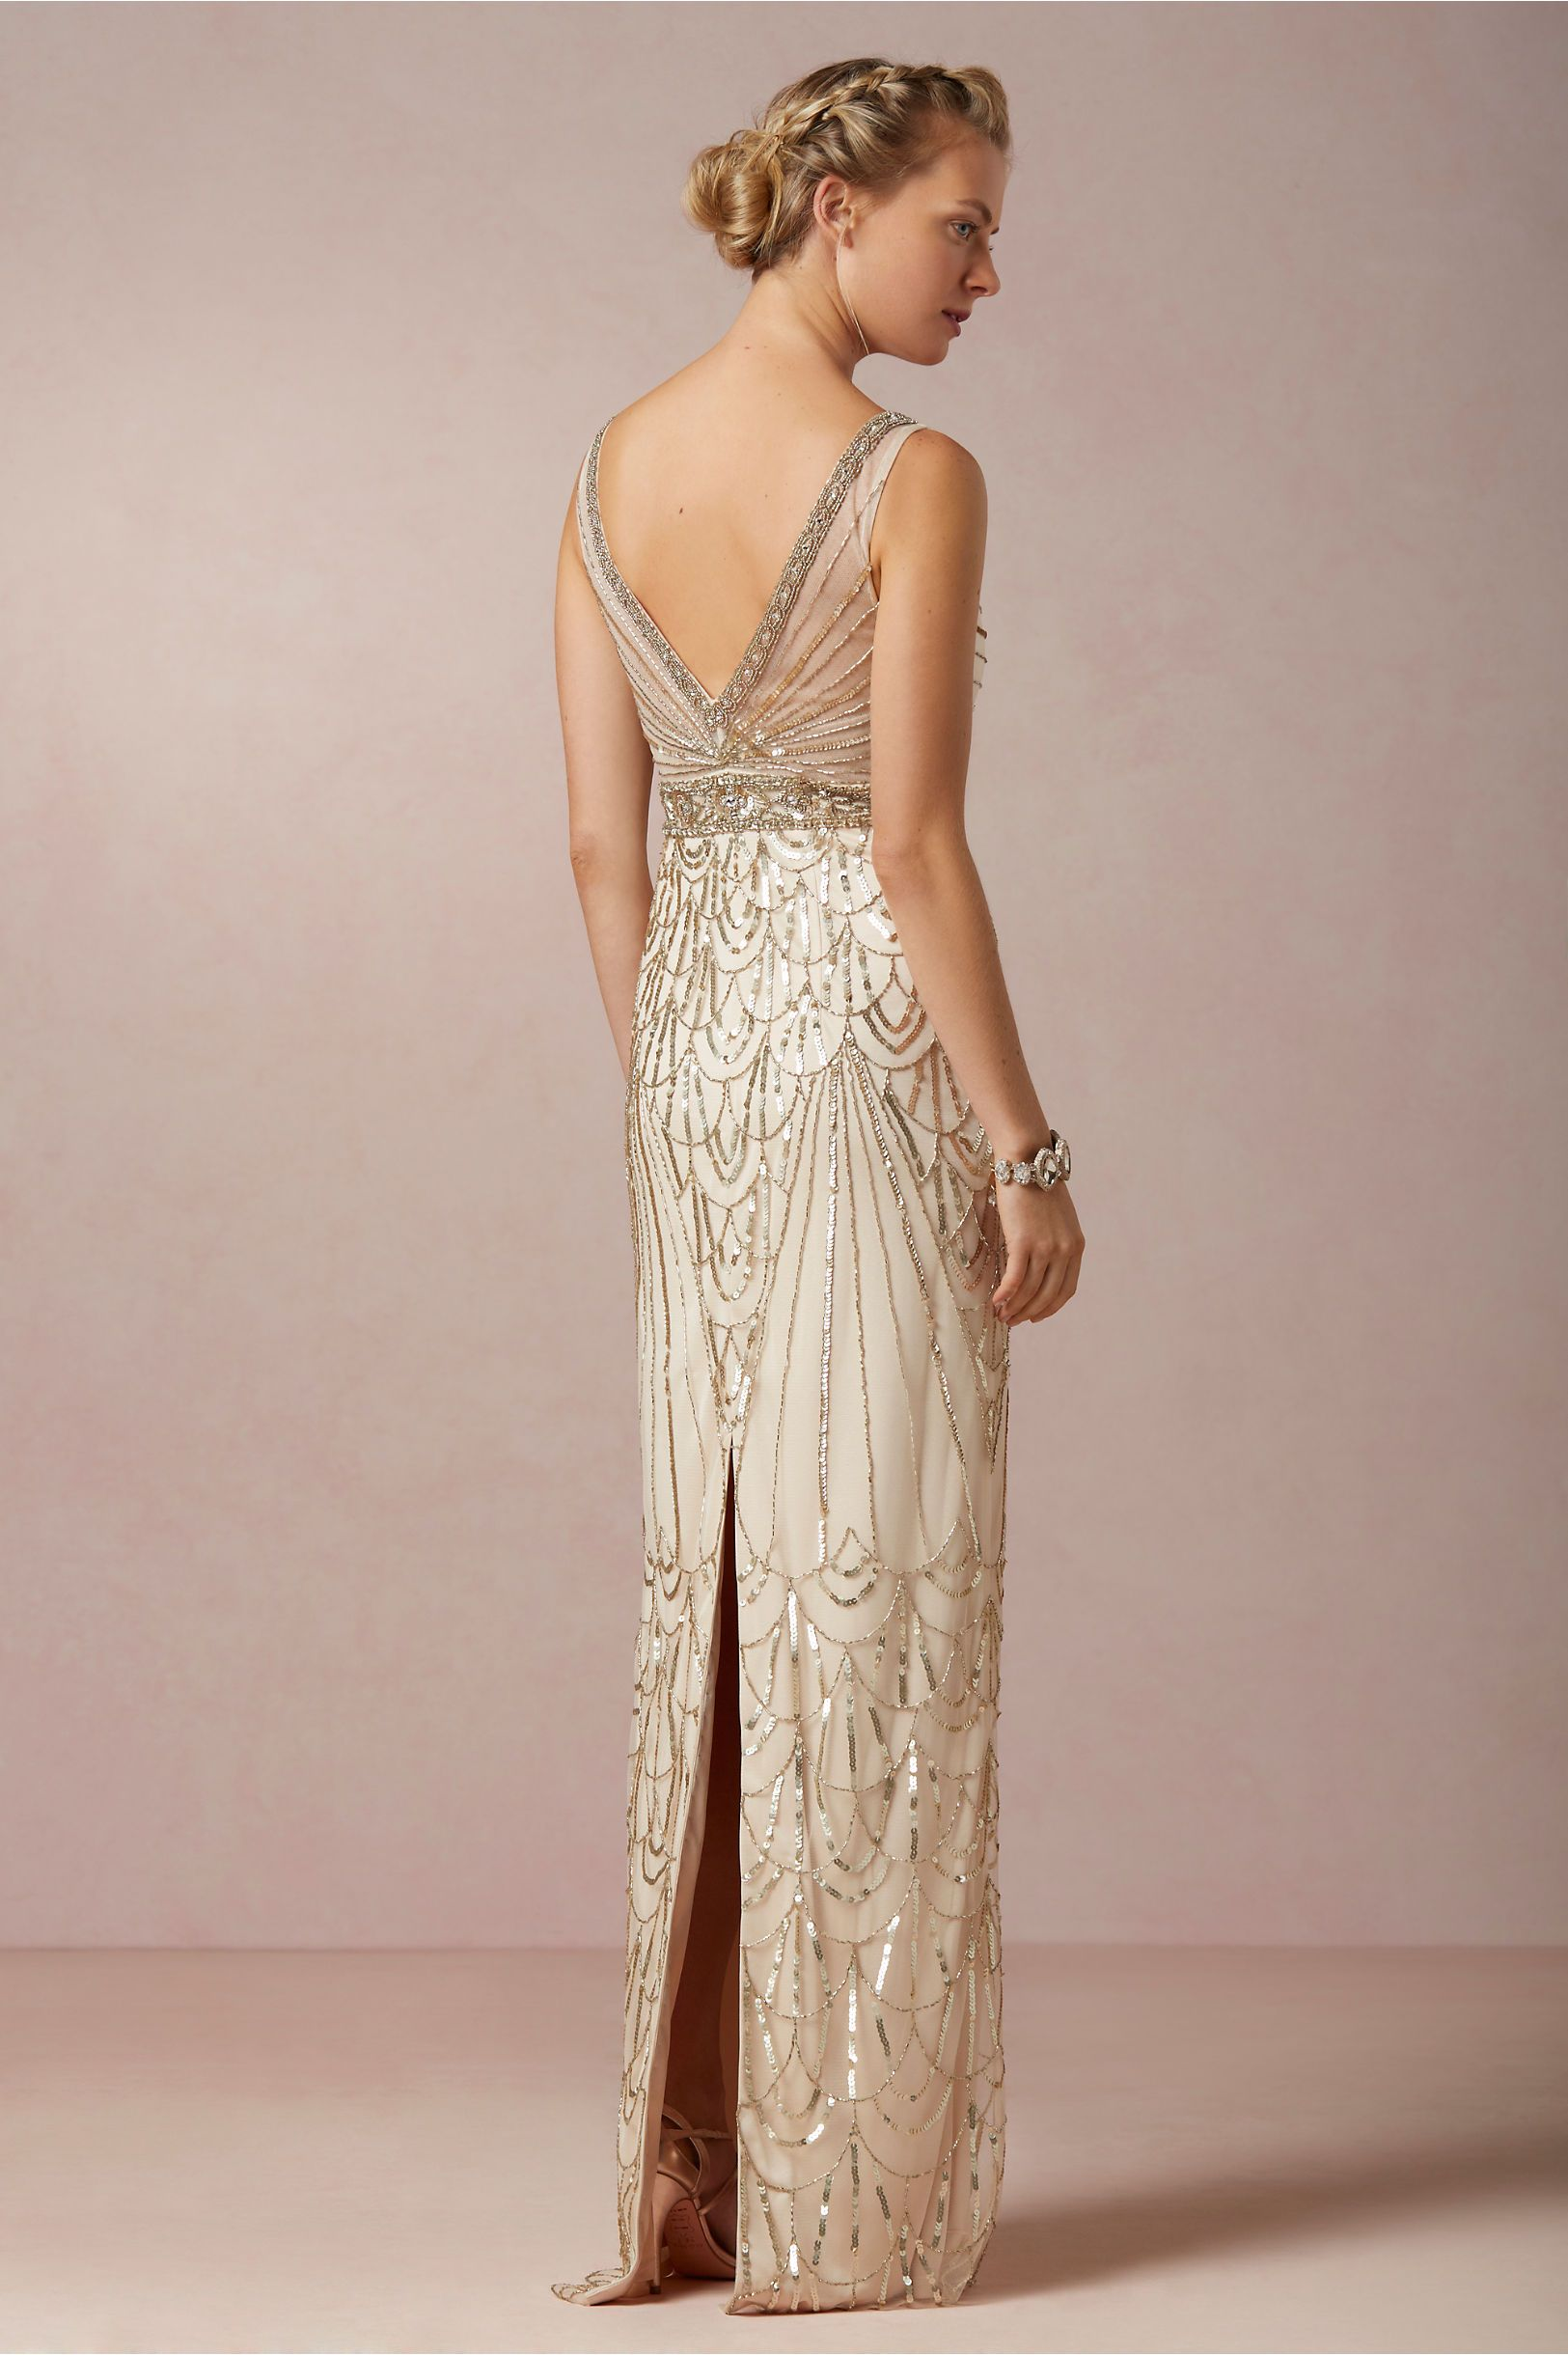 Great gatsby themed wedding dress  Maxine Gown from BHLDN  Wedding Dresses  Pinterest  Gatsby